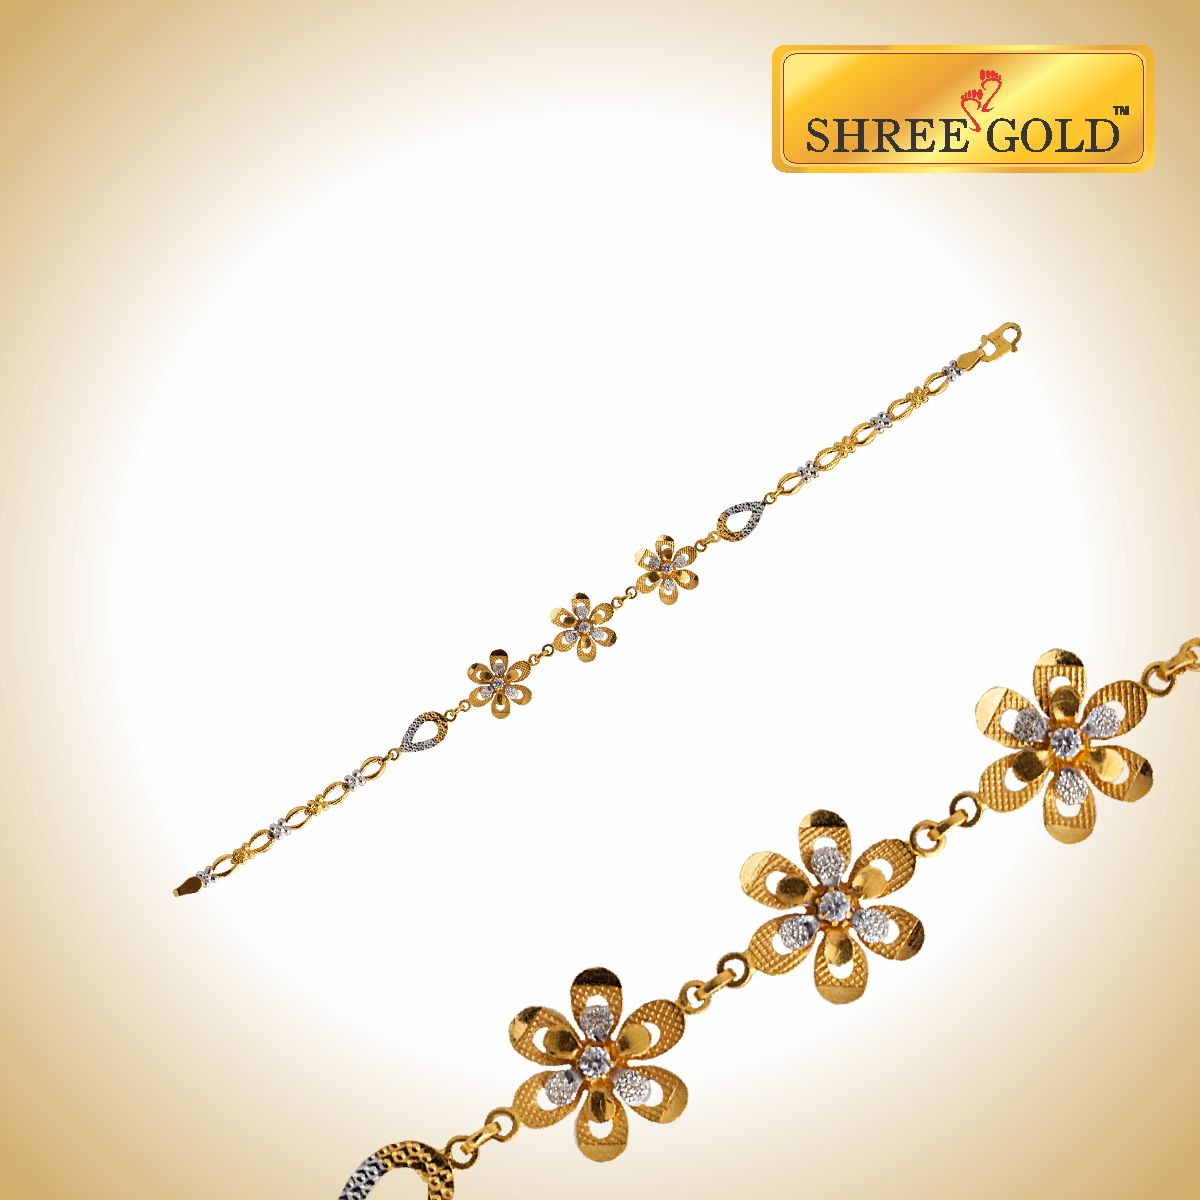 Trendy Flower Design Bracelet That Adds Charm And Elegance Like It For  Your Friends